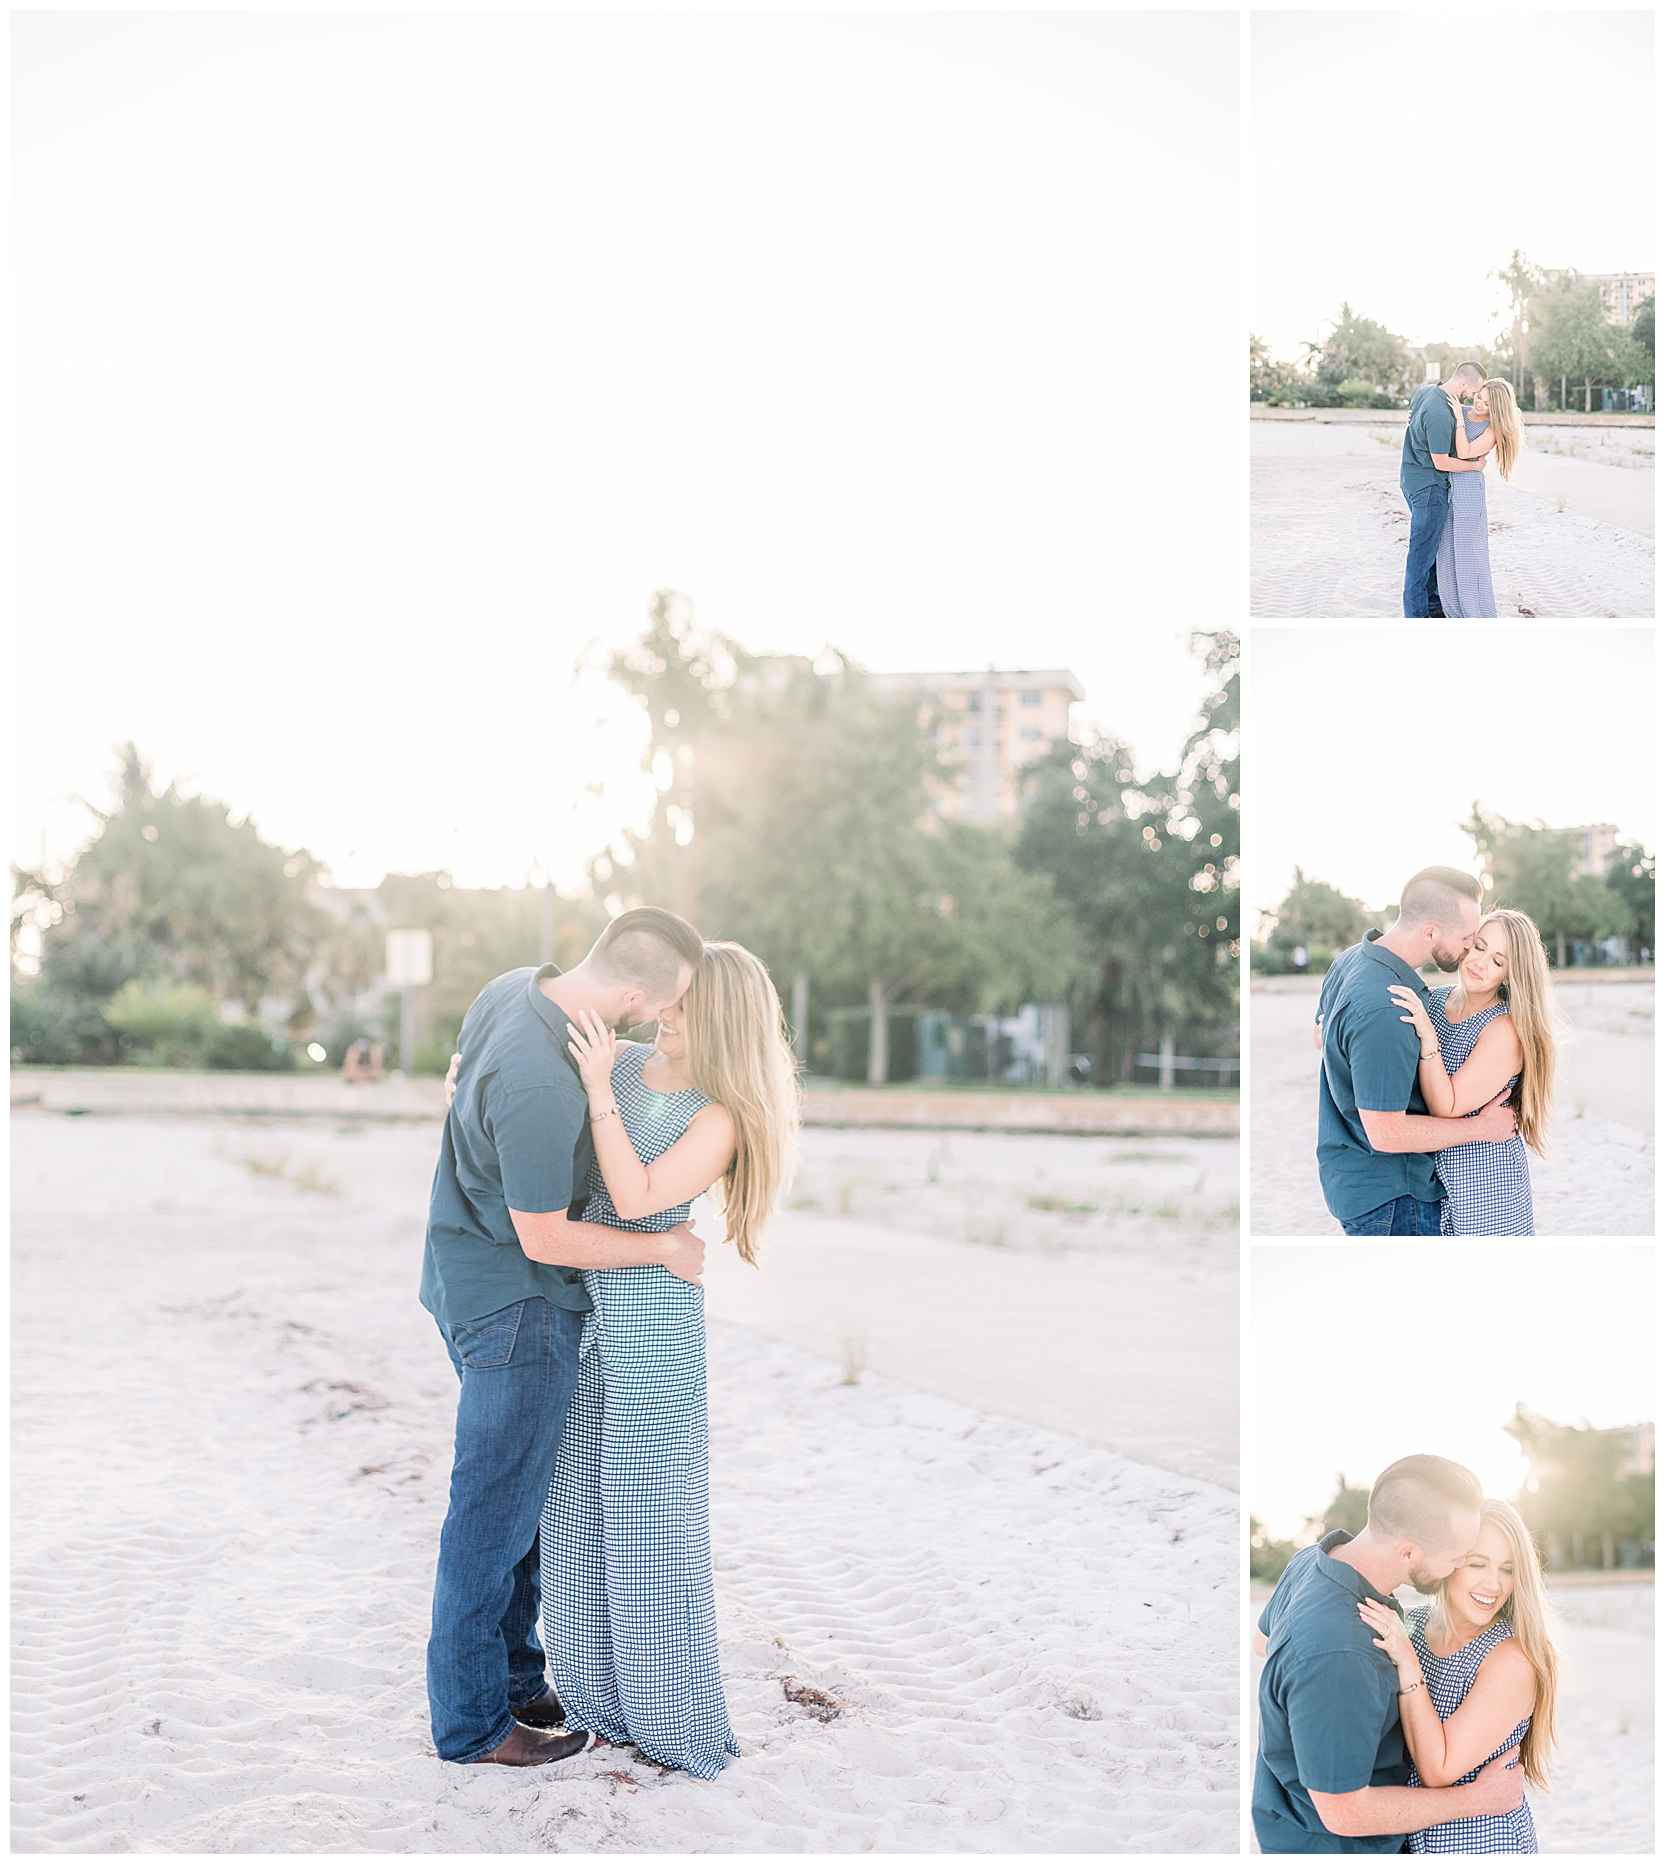 jessicafredericks_st petersburg_wedding_photographer_dtsp_anniversary_dali_north shore22.jpg